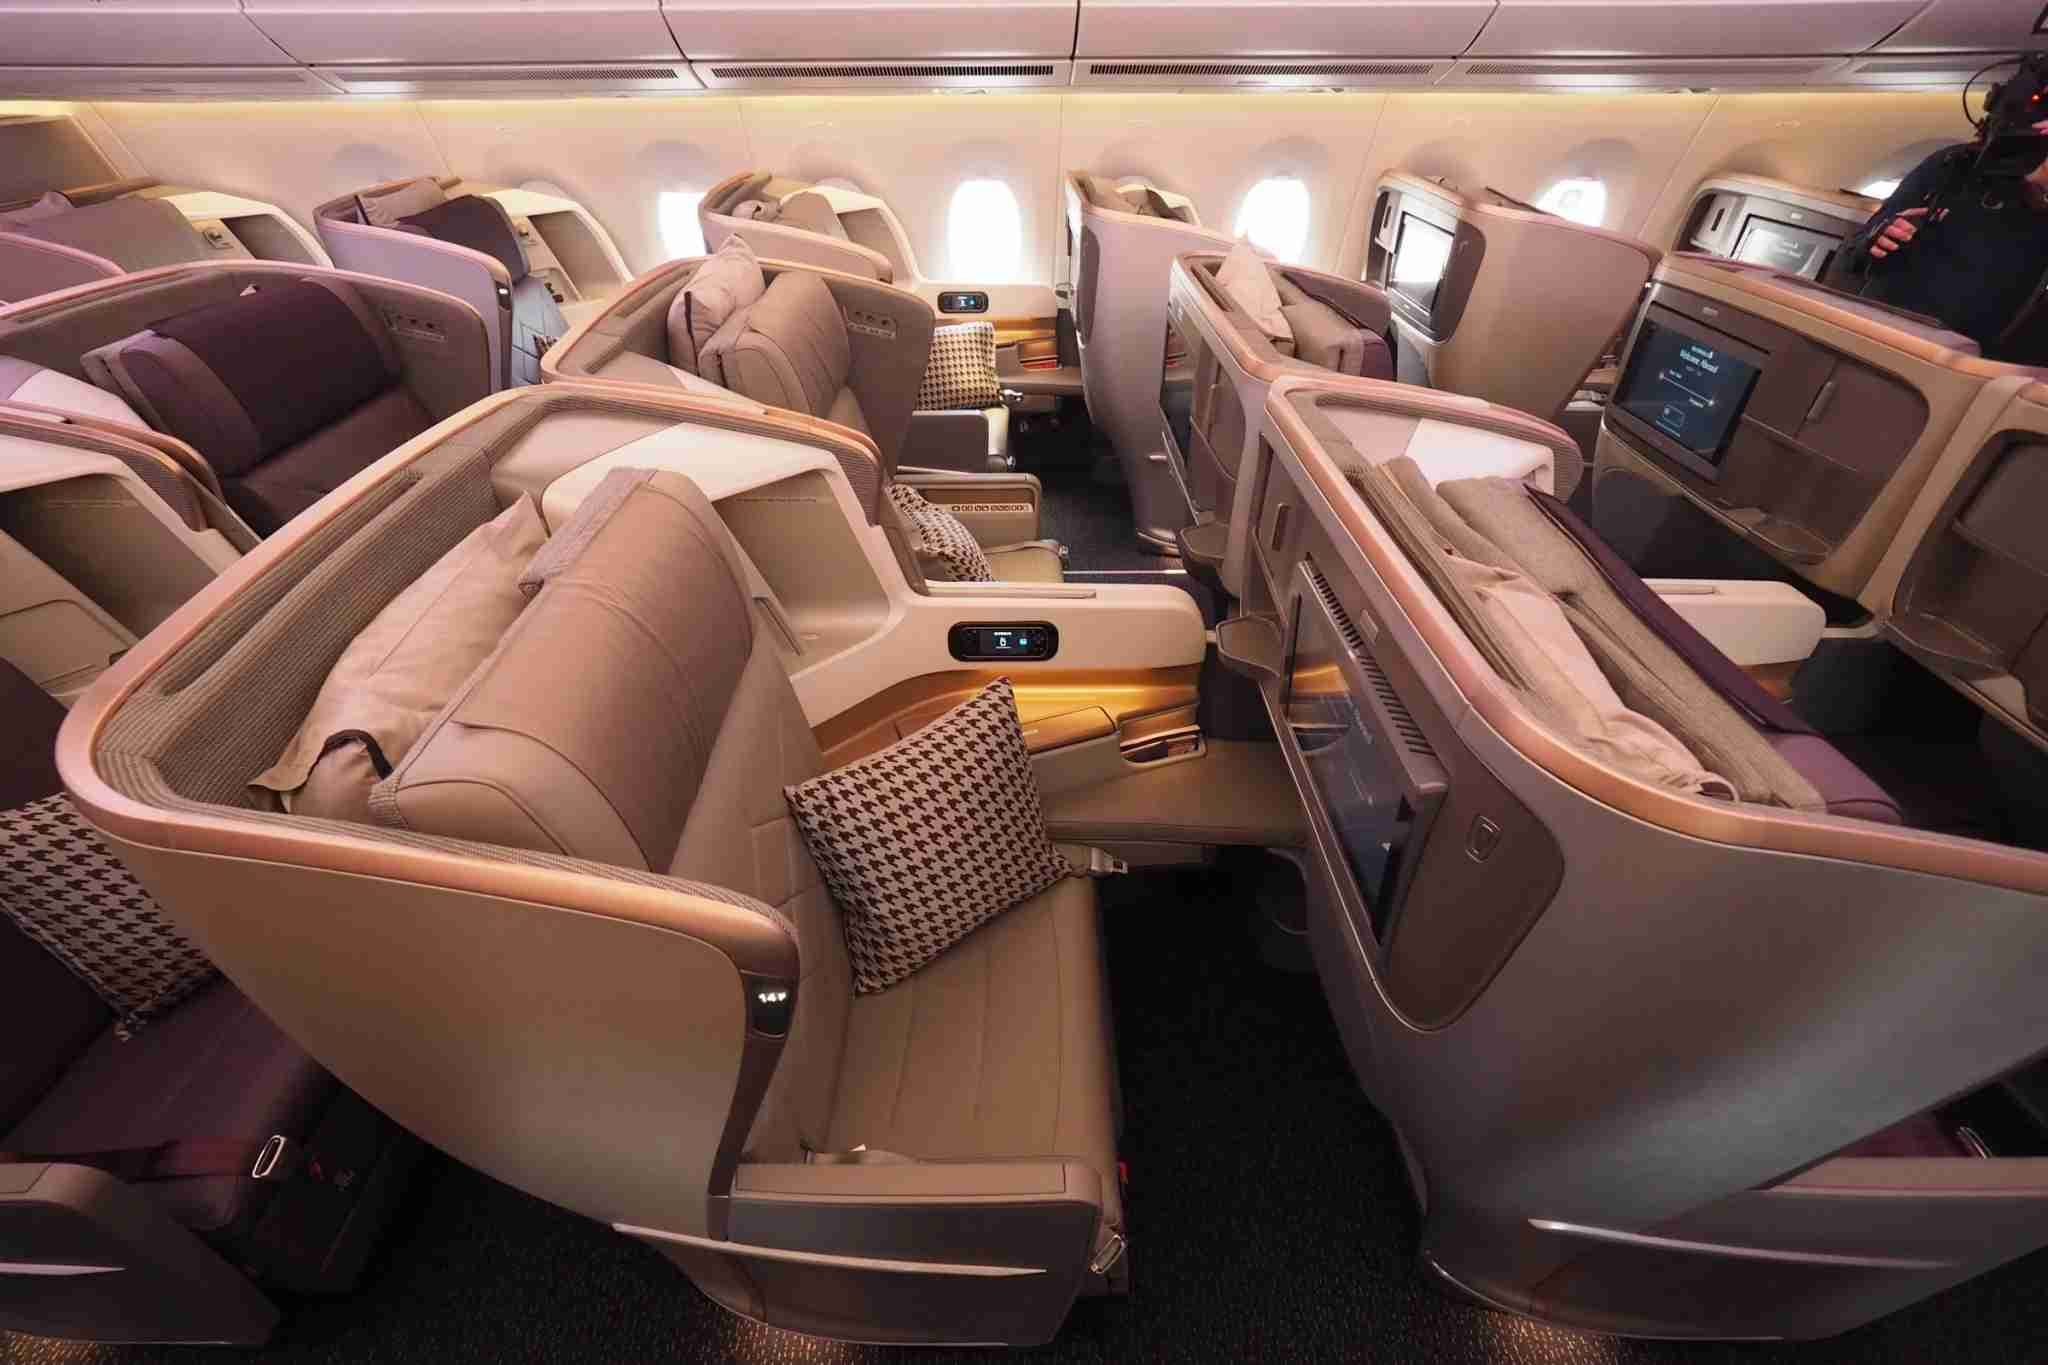 Cash in your Citi ThankYou points for a business class seat on Singapore Airlines and get a 10% rebate